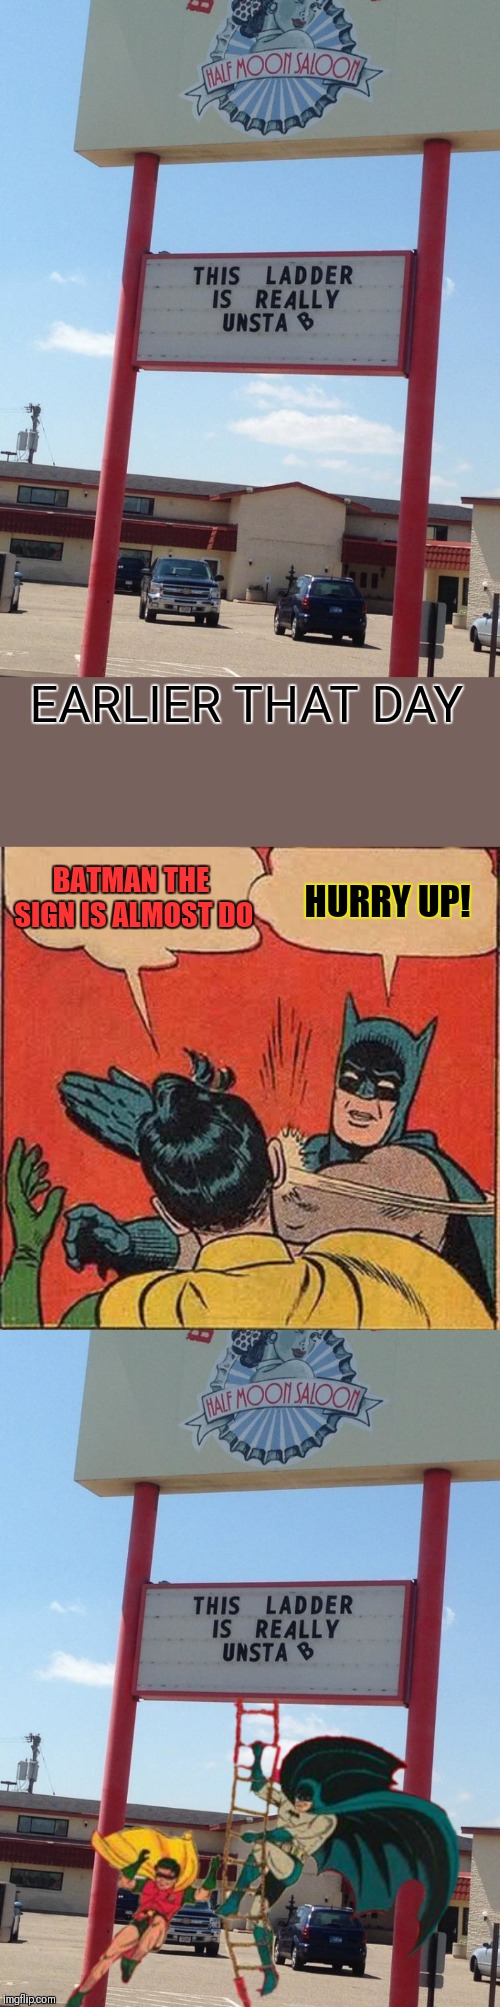 Unstable Ladder | EARLIER THAT DAY BATMAN THE SIGN IS ALMOST DO HURRY UP! | image tagged in memes,batman slapping robin,funny,funny signs,44colt,restaurant | made w/ Imgflip meme maker